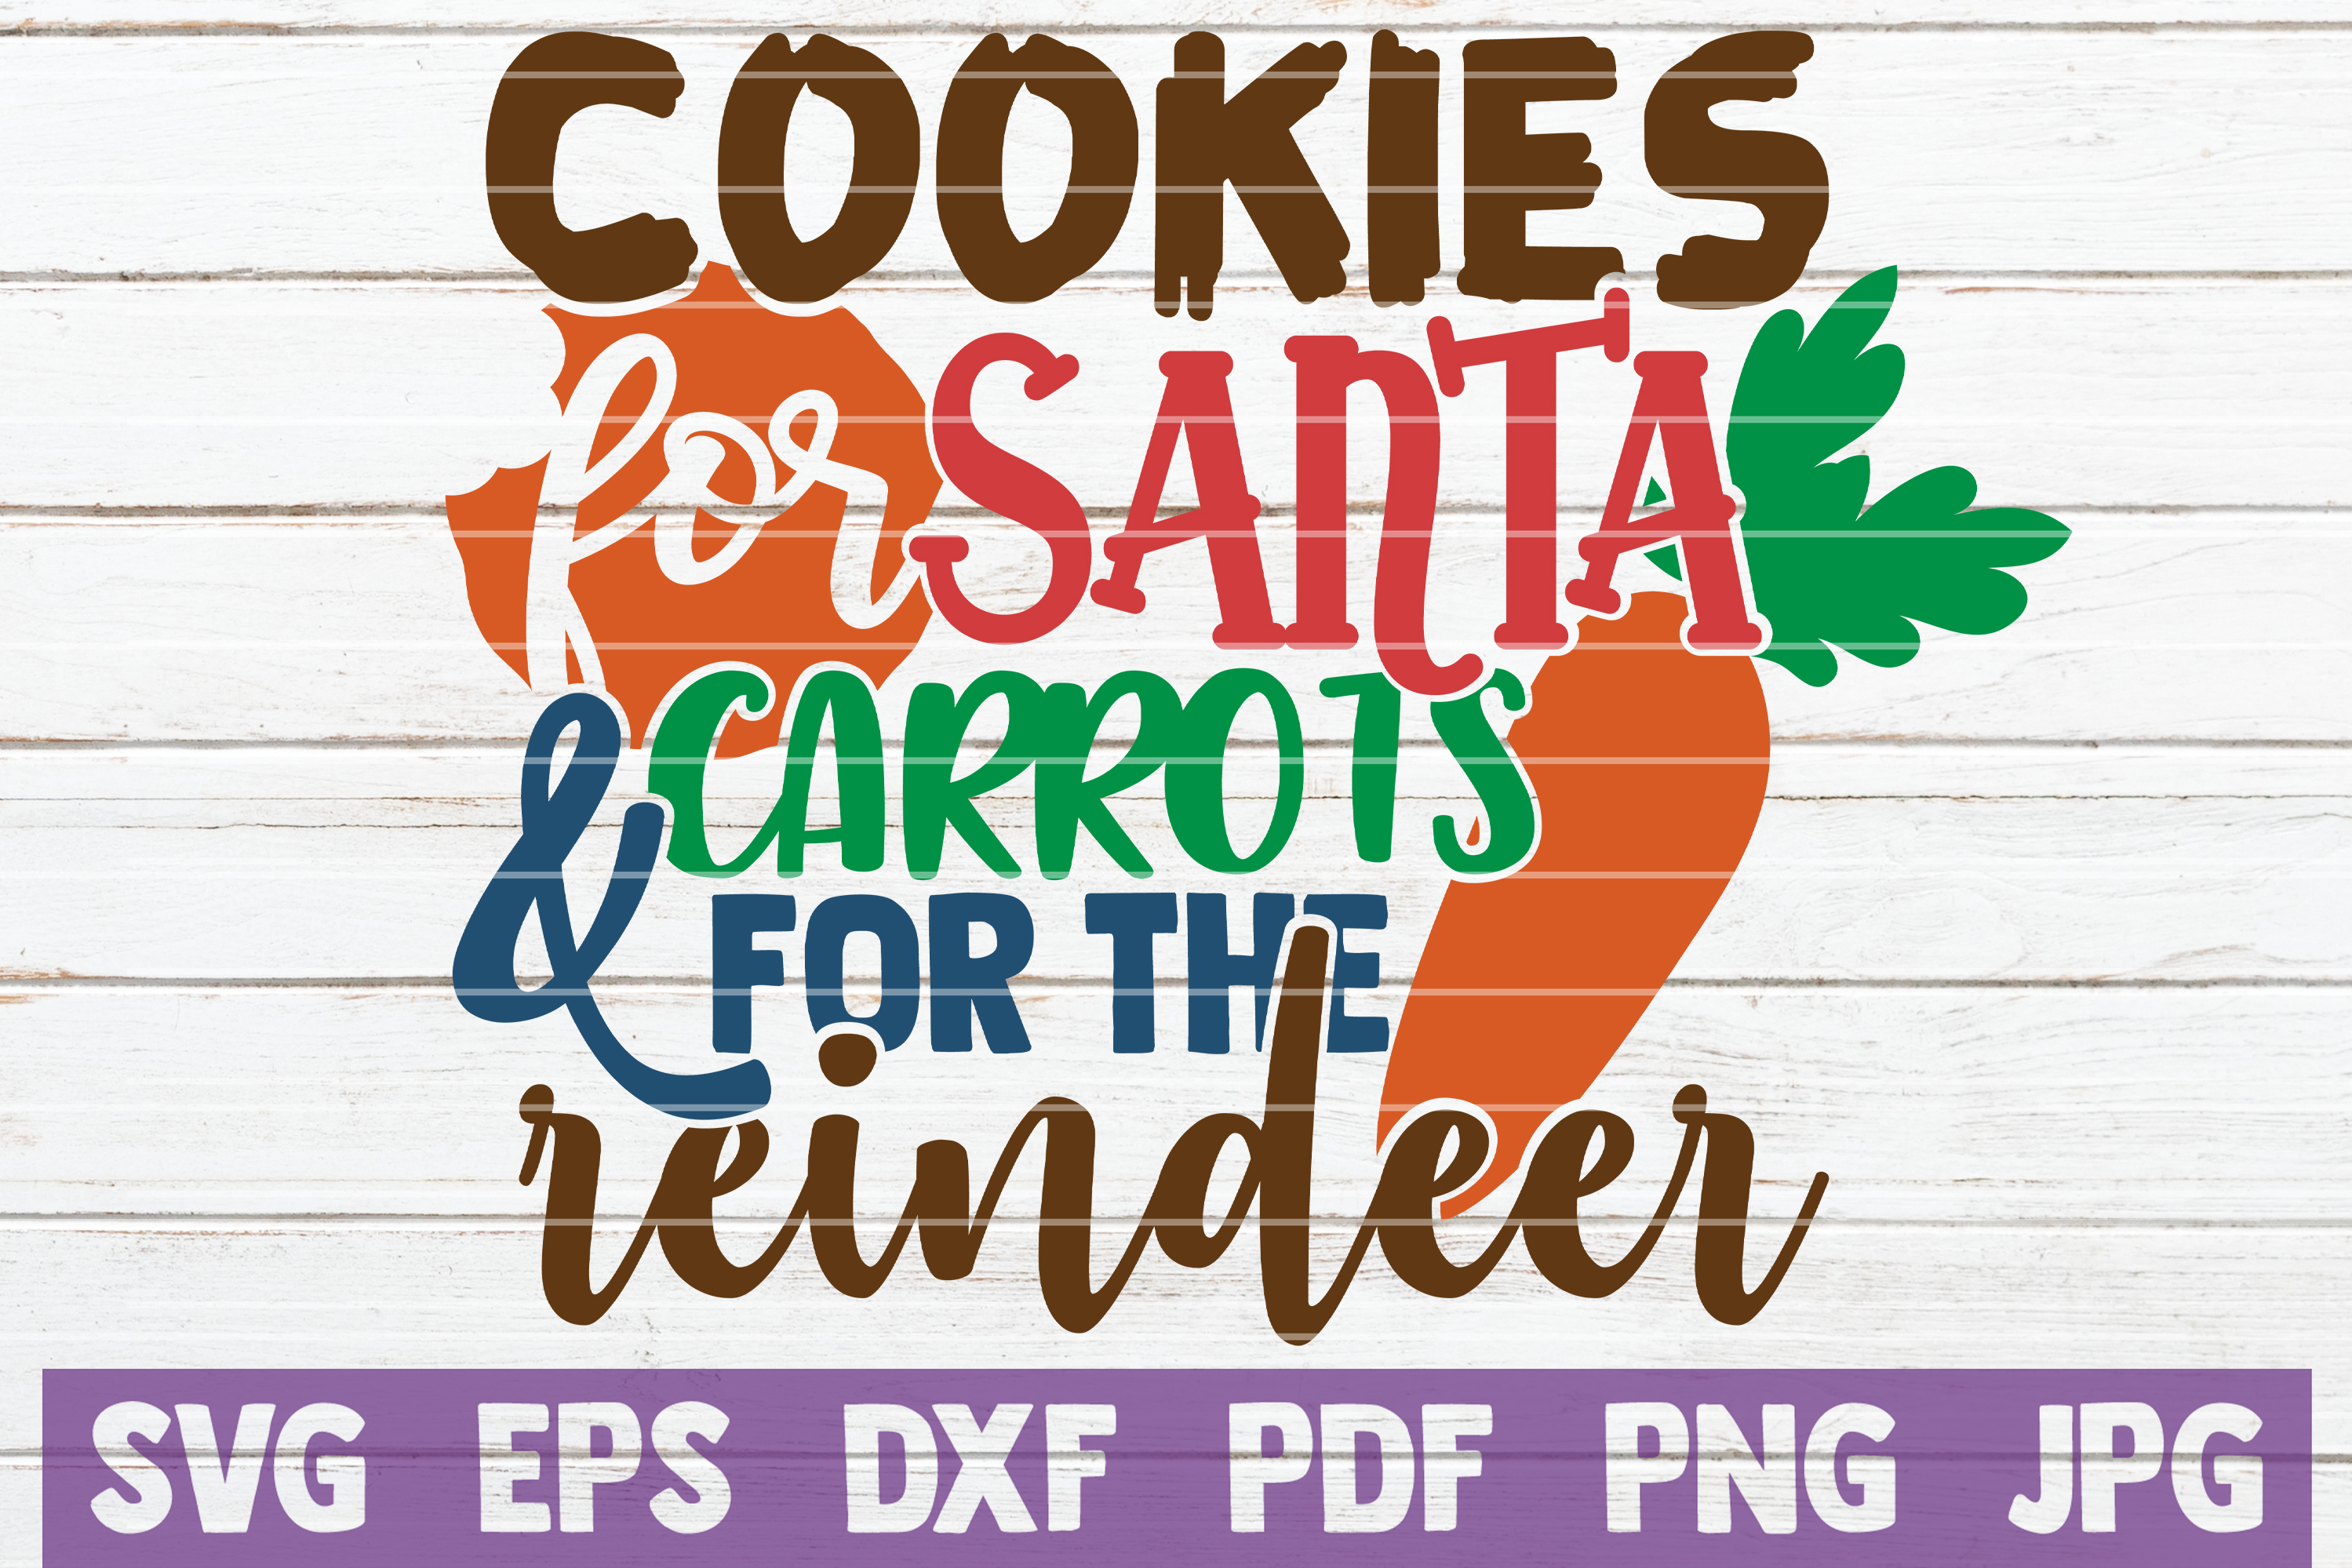 Cookies For Santa And Carrots For The Reindeer SVG Cut File example image 1